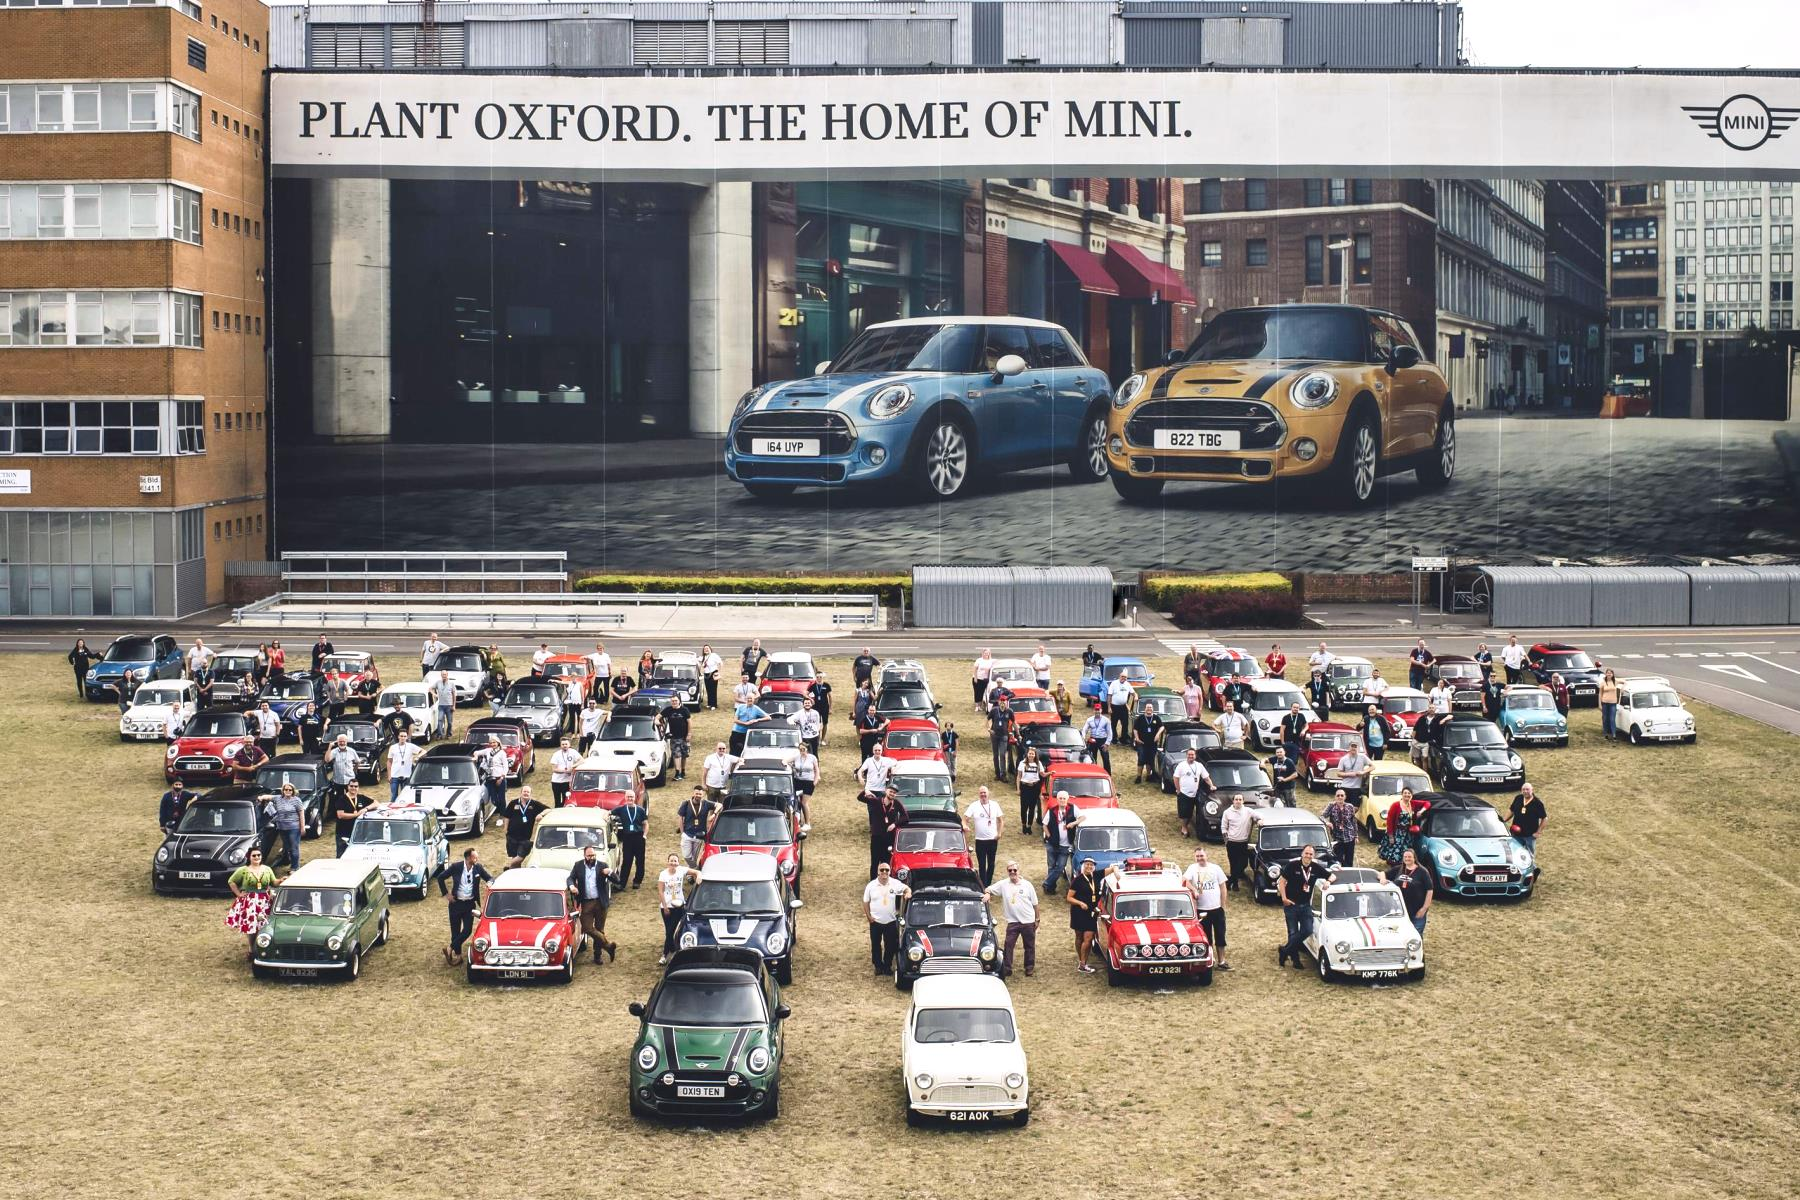 10 millionth MINI - Plant Oxford